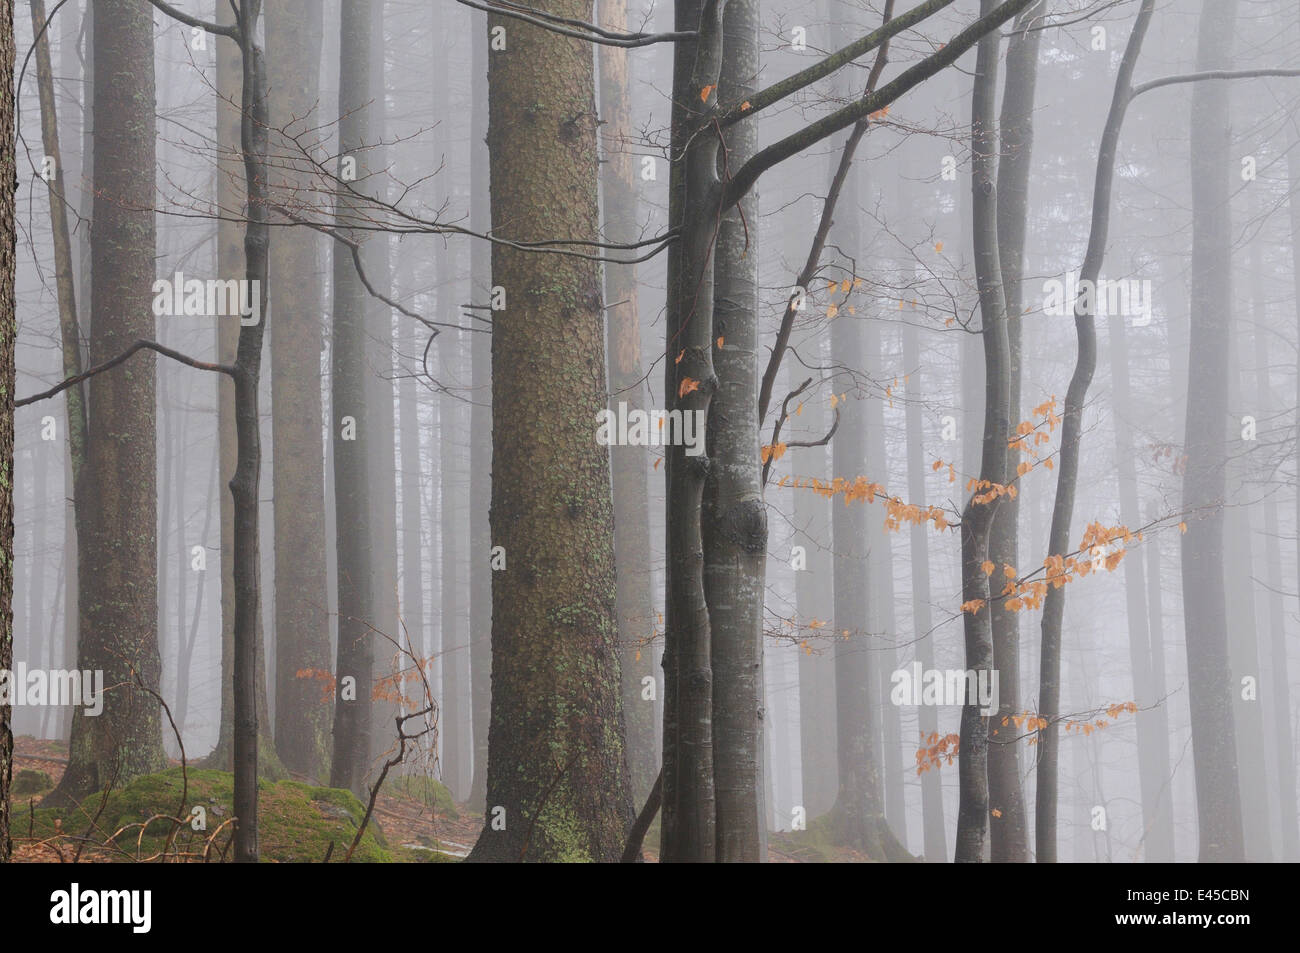 Forest in winter, Bayerischer Wald National Park, Germany Stock Photo